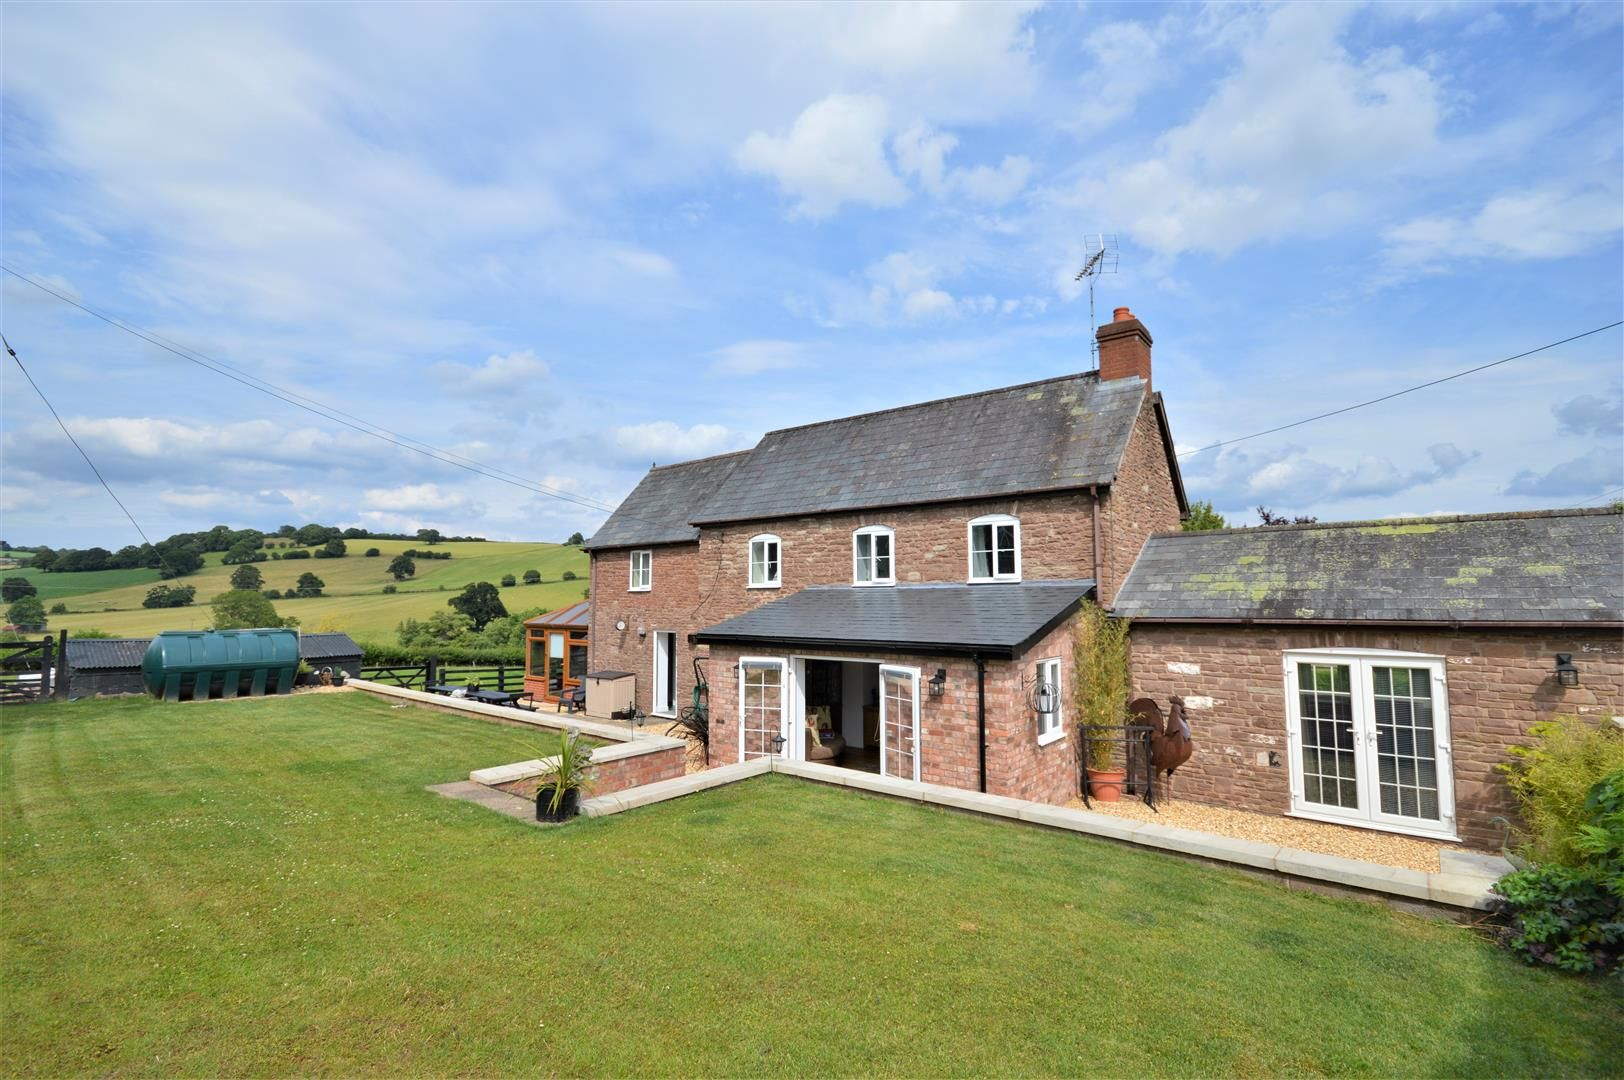 3 bed detached for sale in Orcop  - Property Image 3